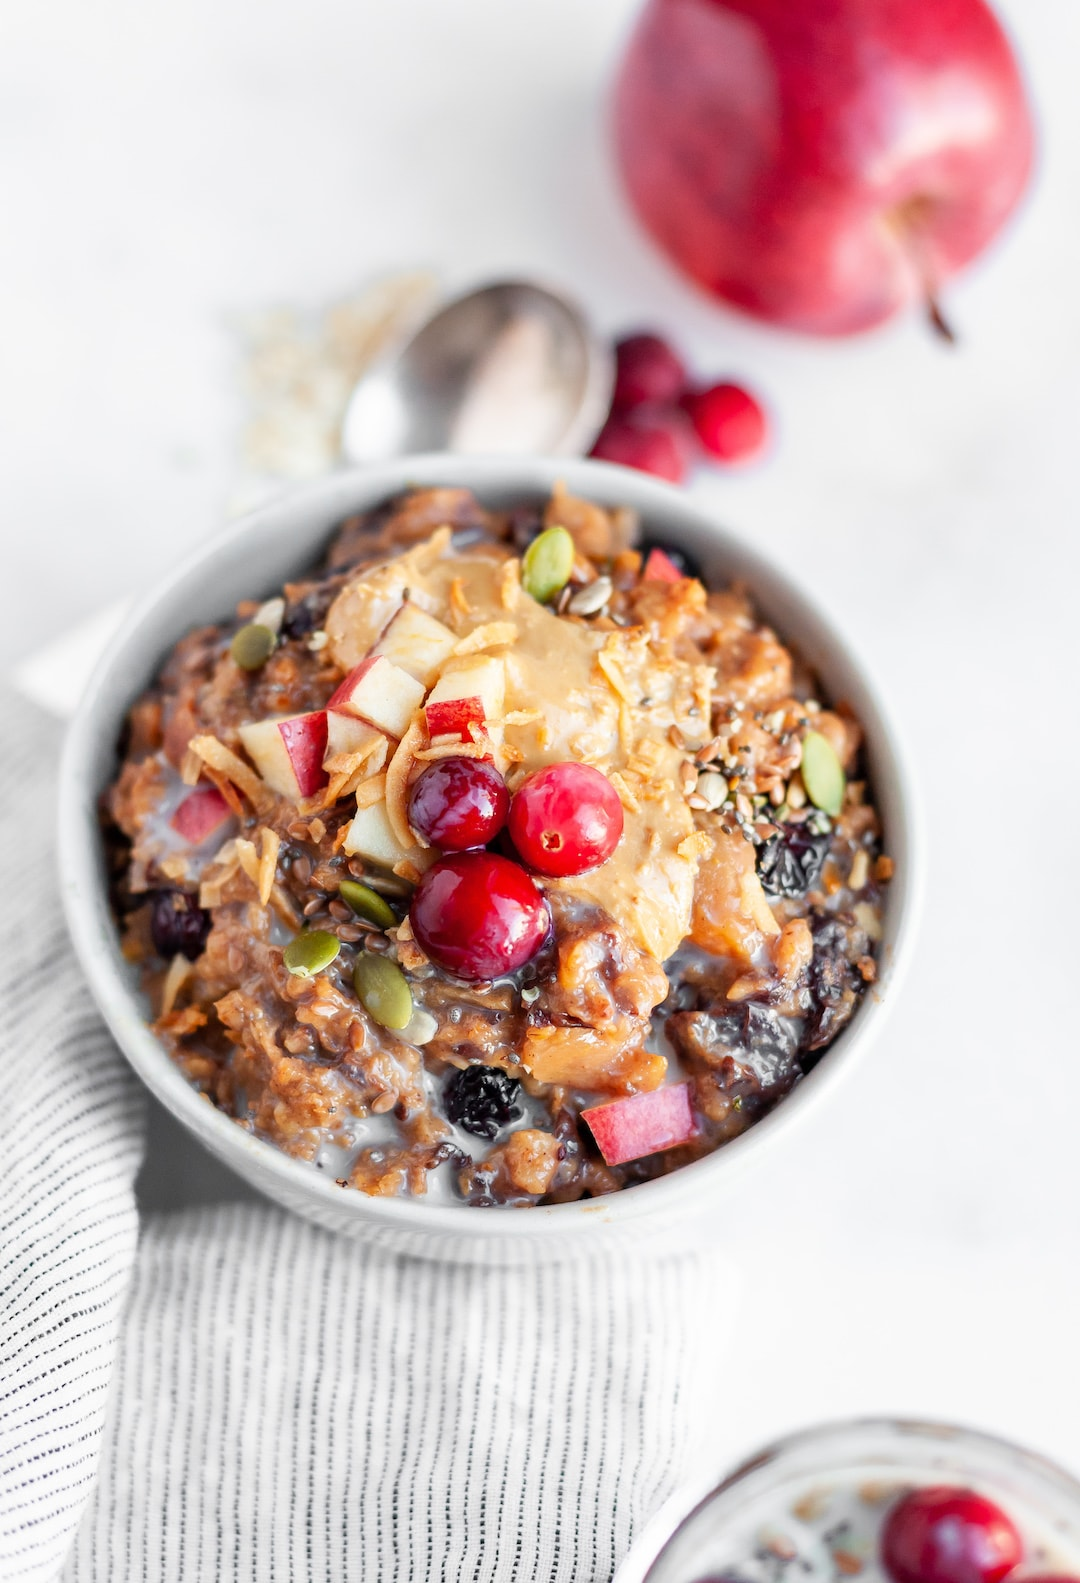 Easy Overnight Crockpot Oatmeal with Apples & Cranberry